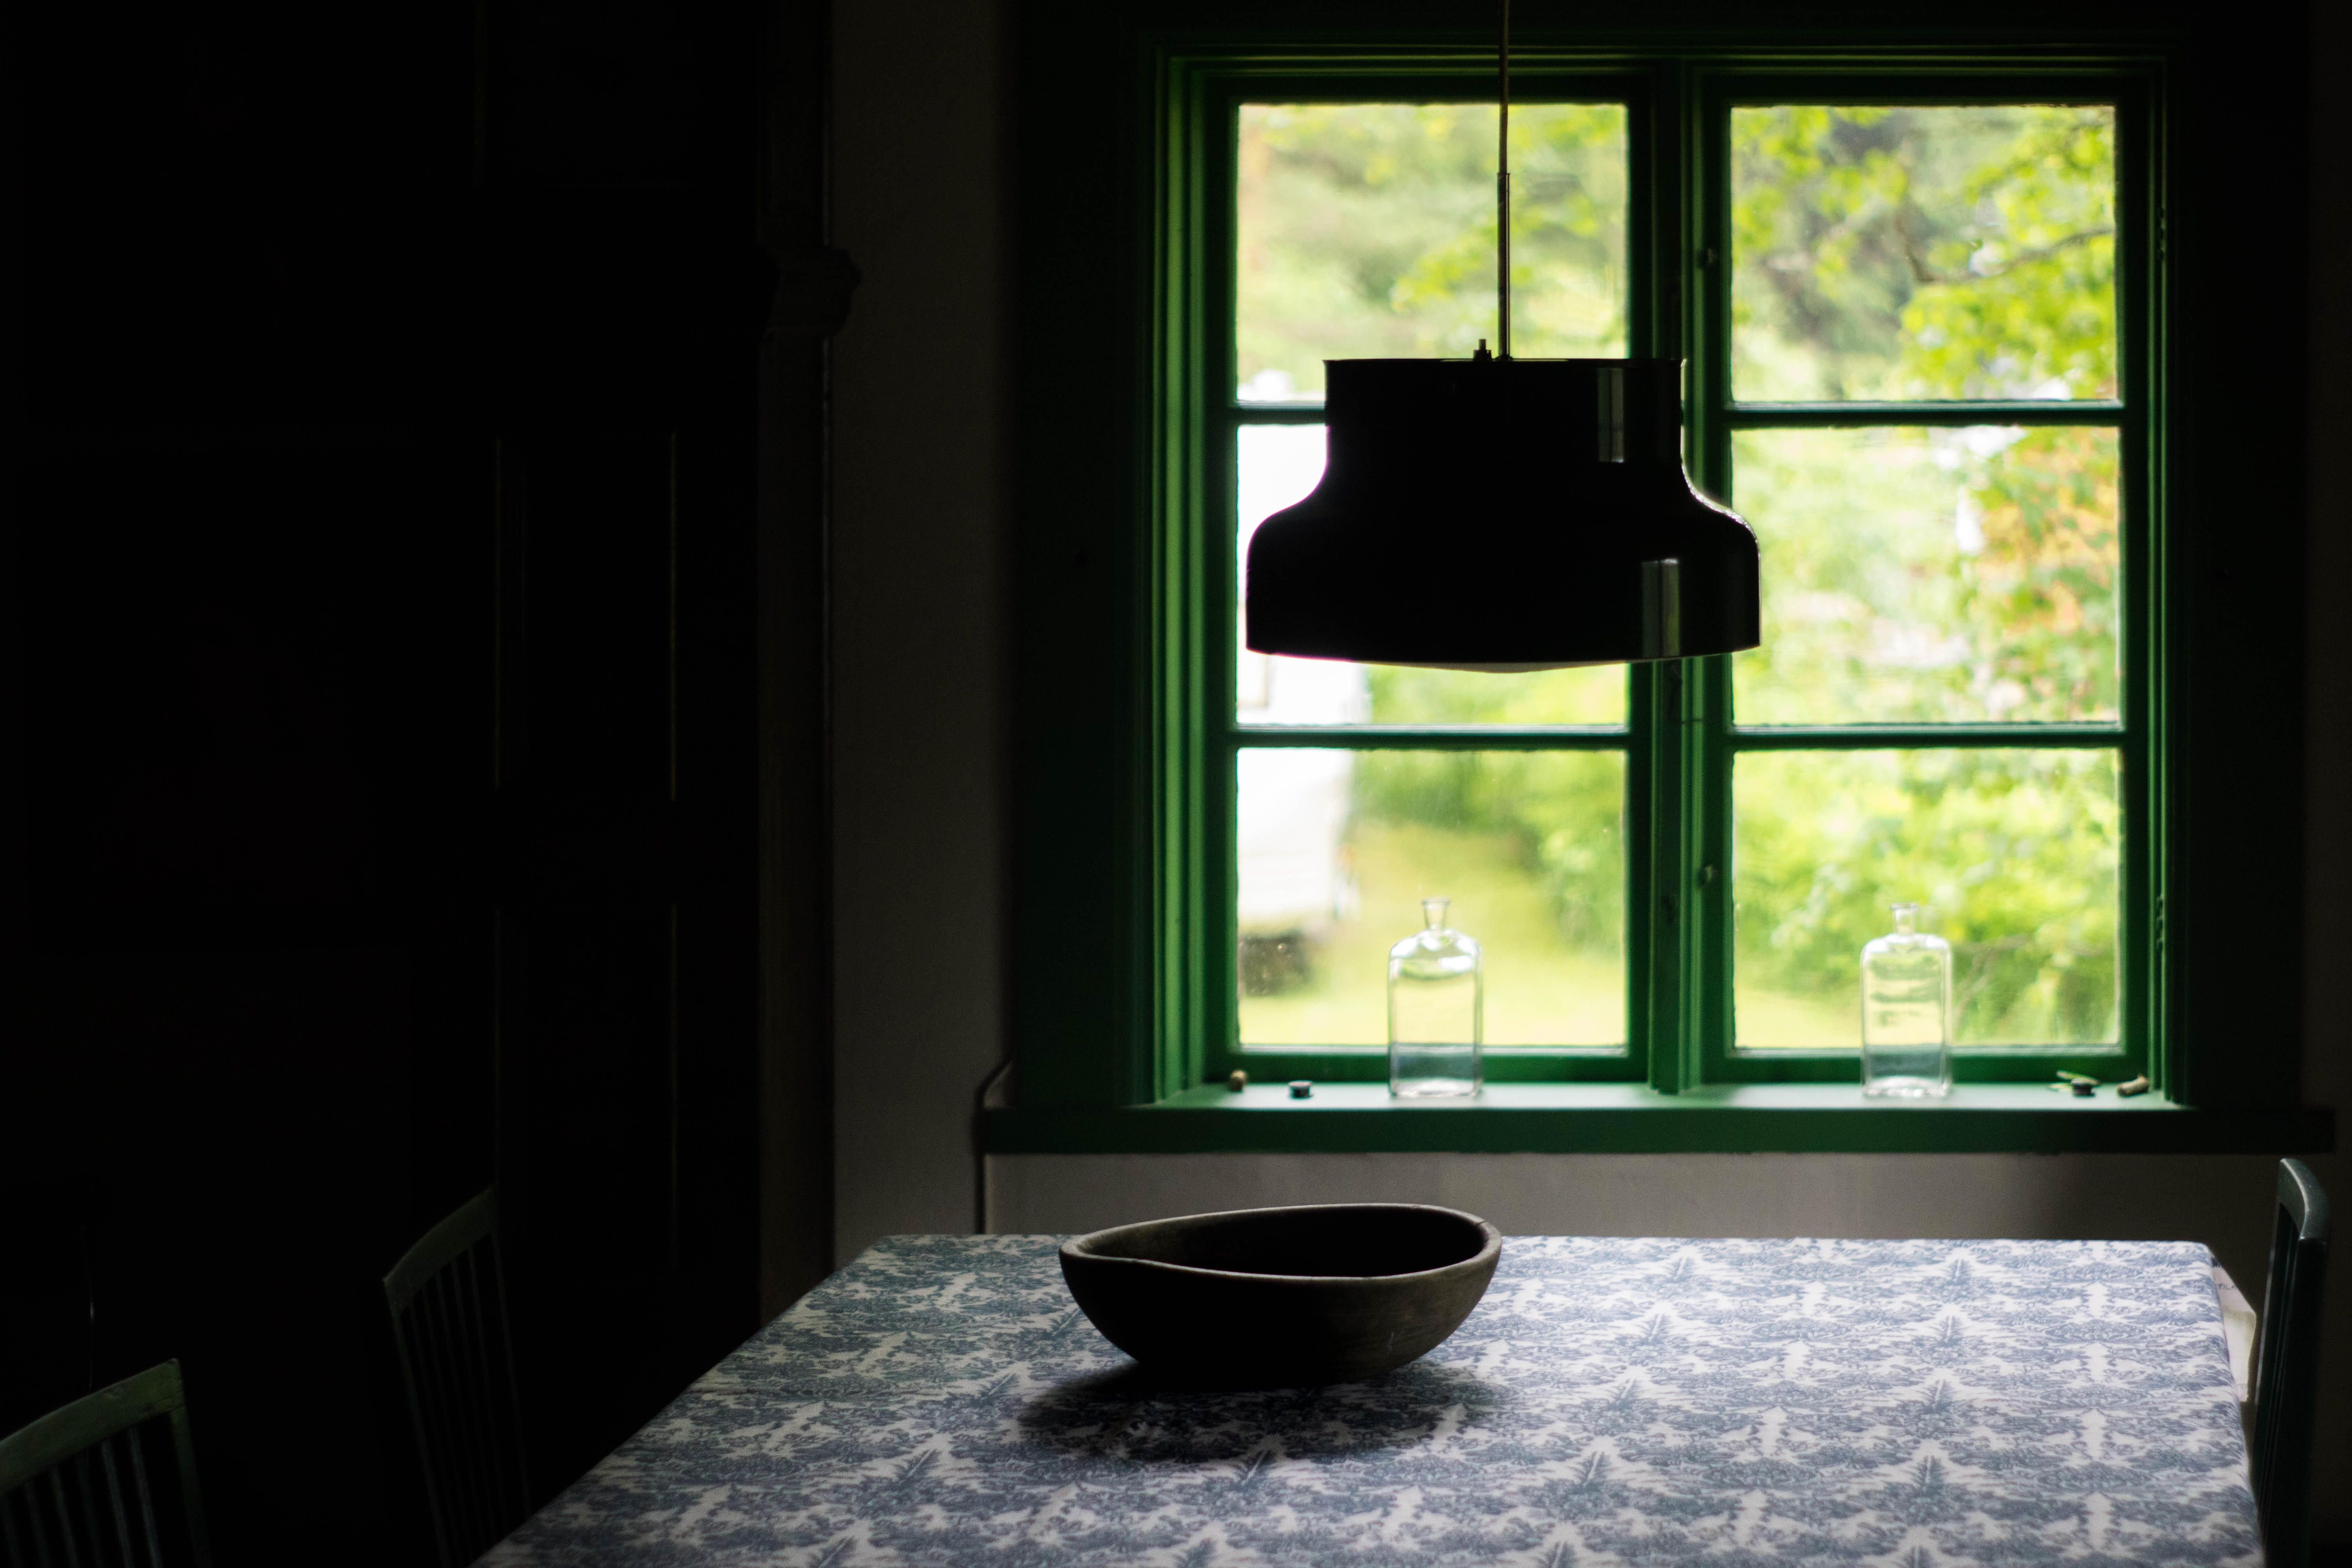 Window with green frame from dark interior with table decor, hanging light and bowl, Borlänge